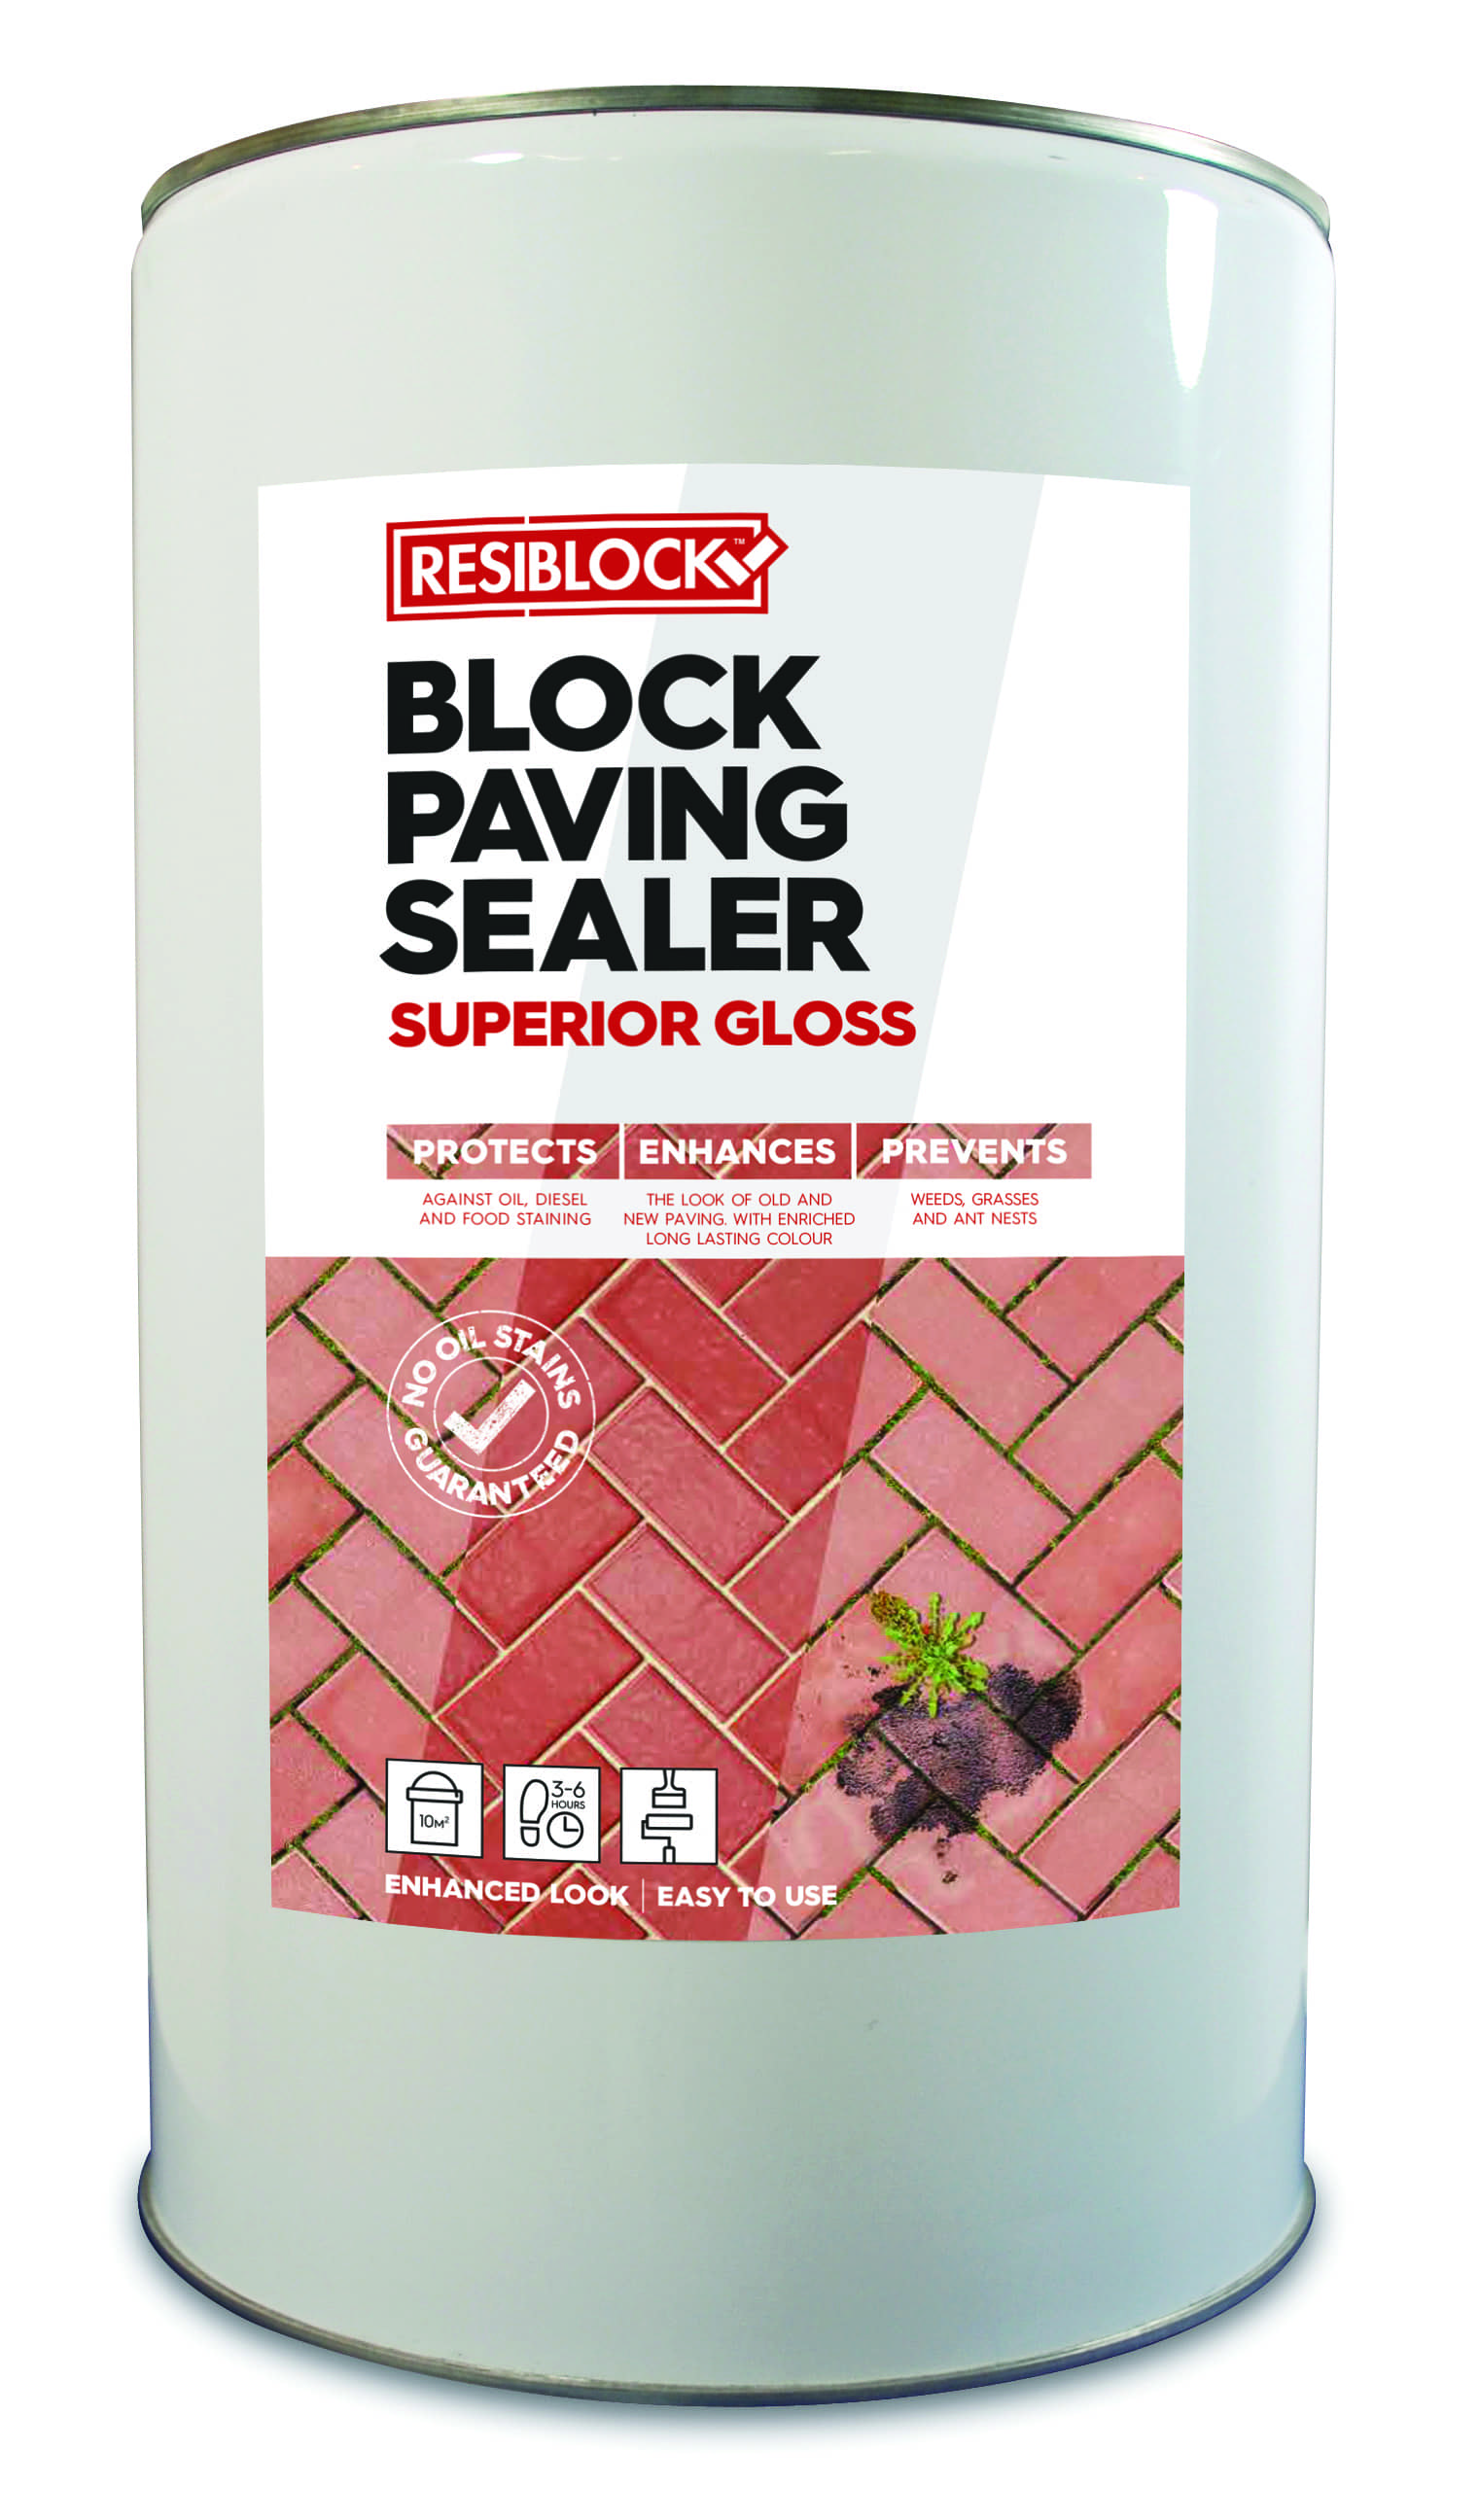 How Durable is Block Paving Sealant